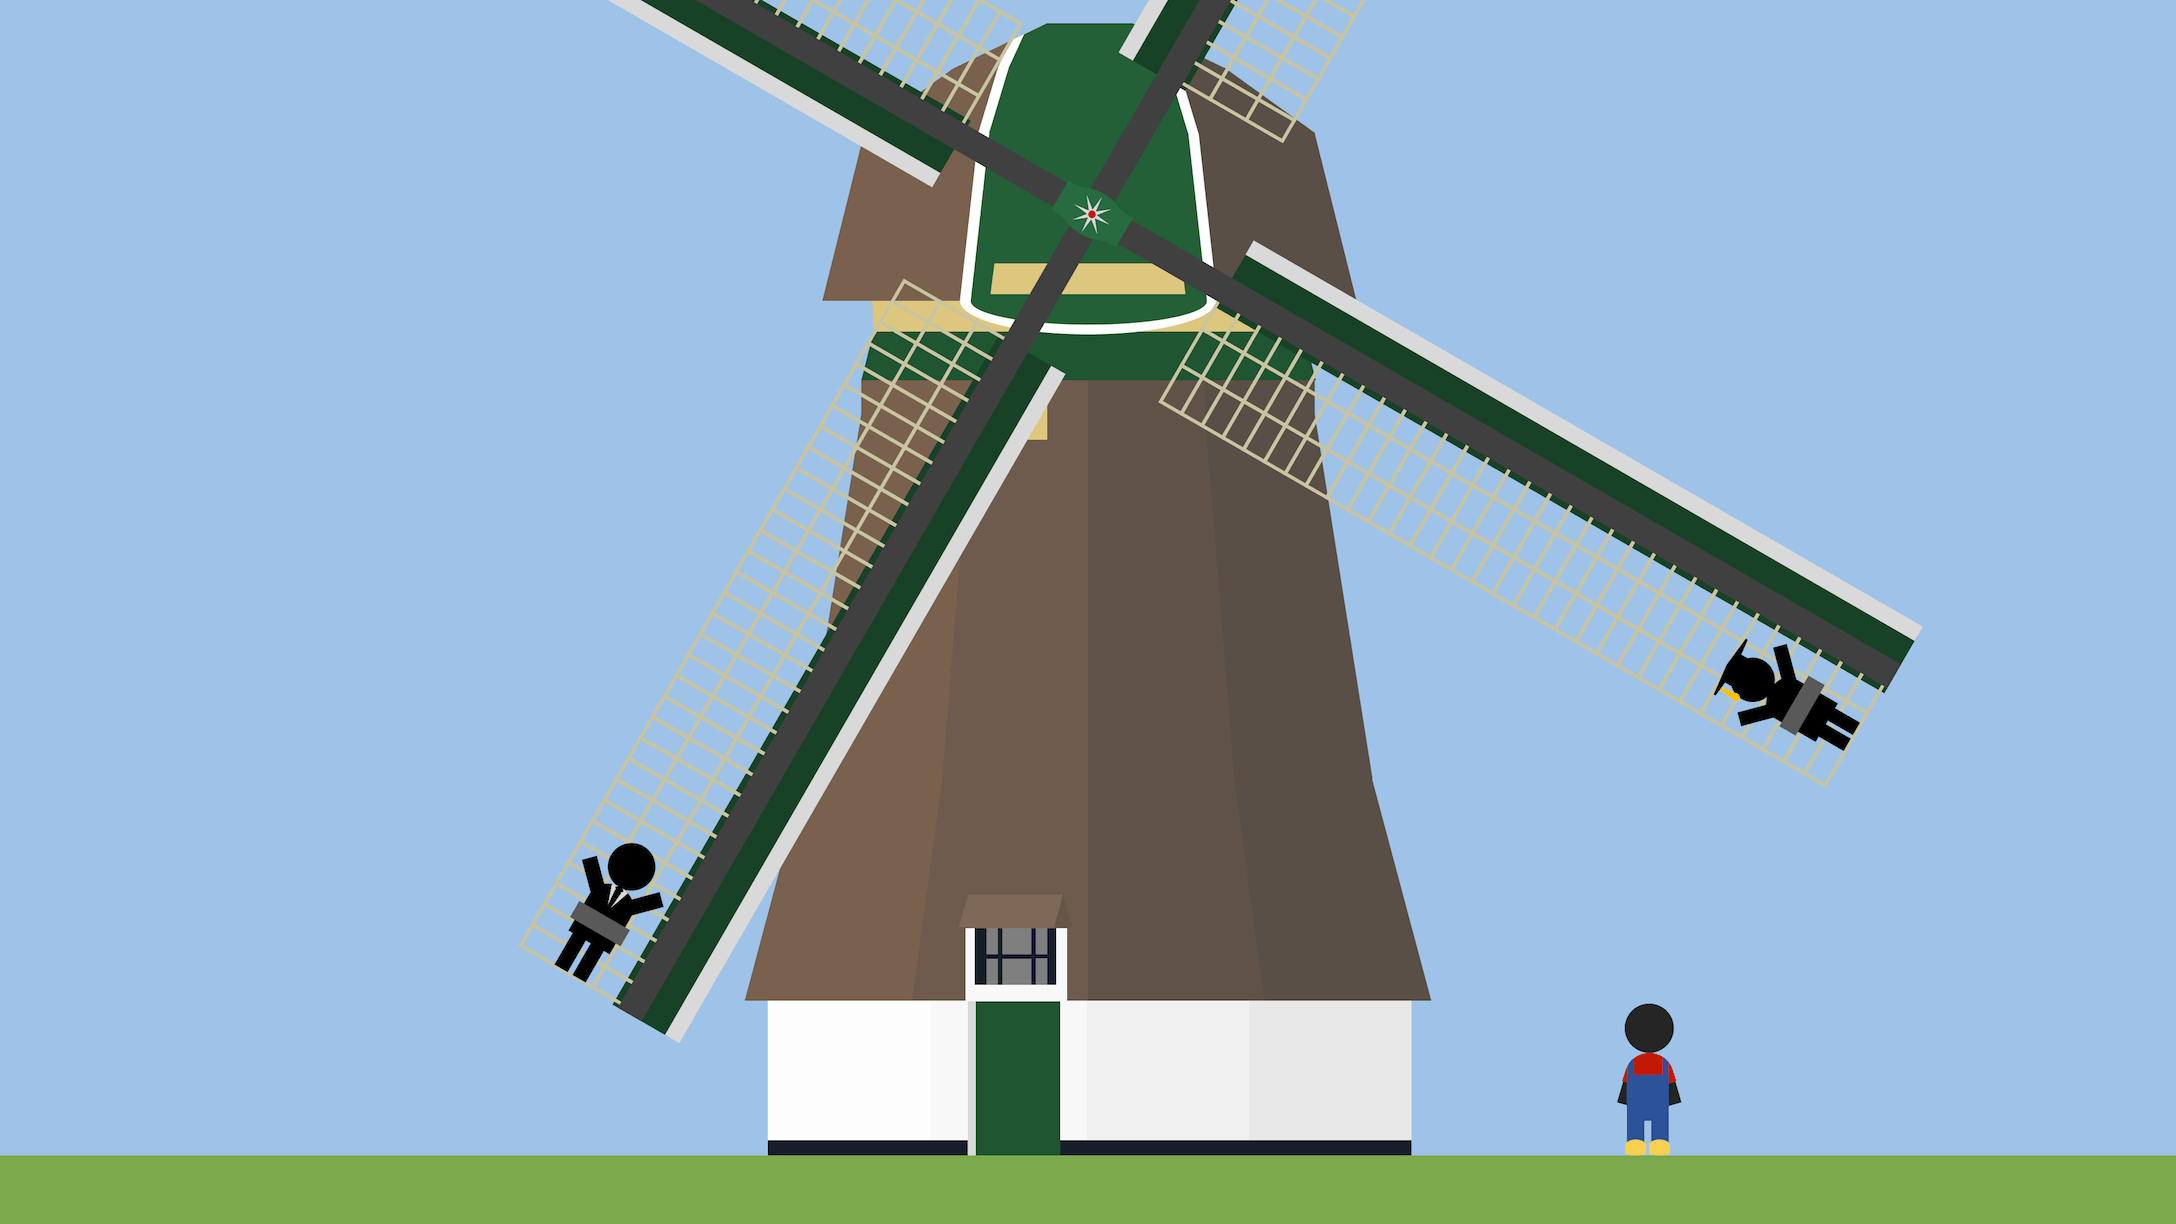 People with different jobs, tied to a Dutch windmill